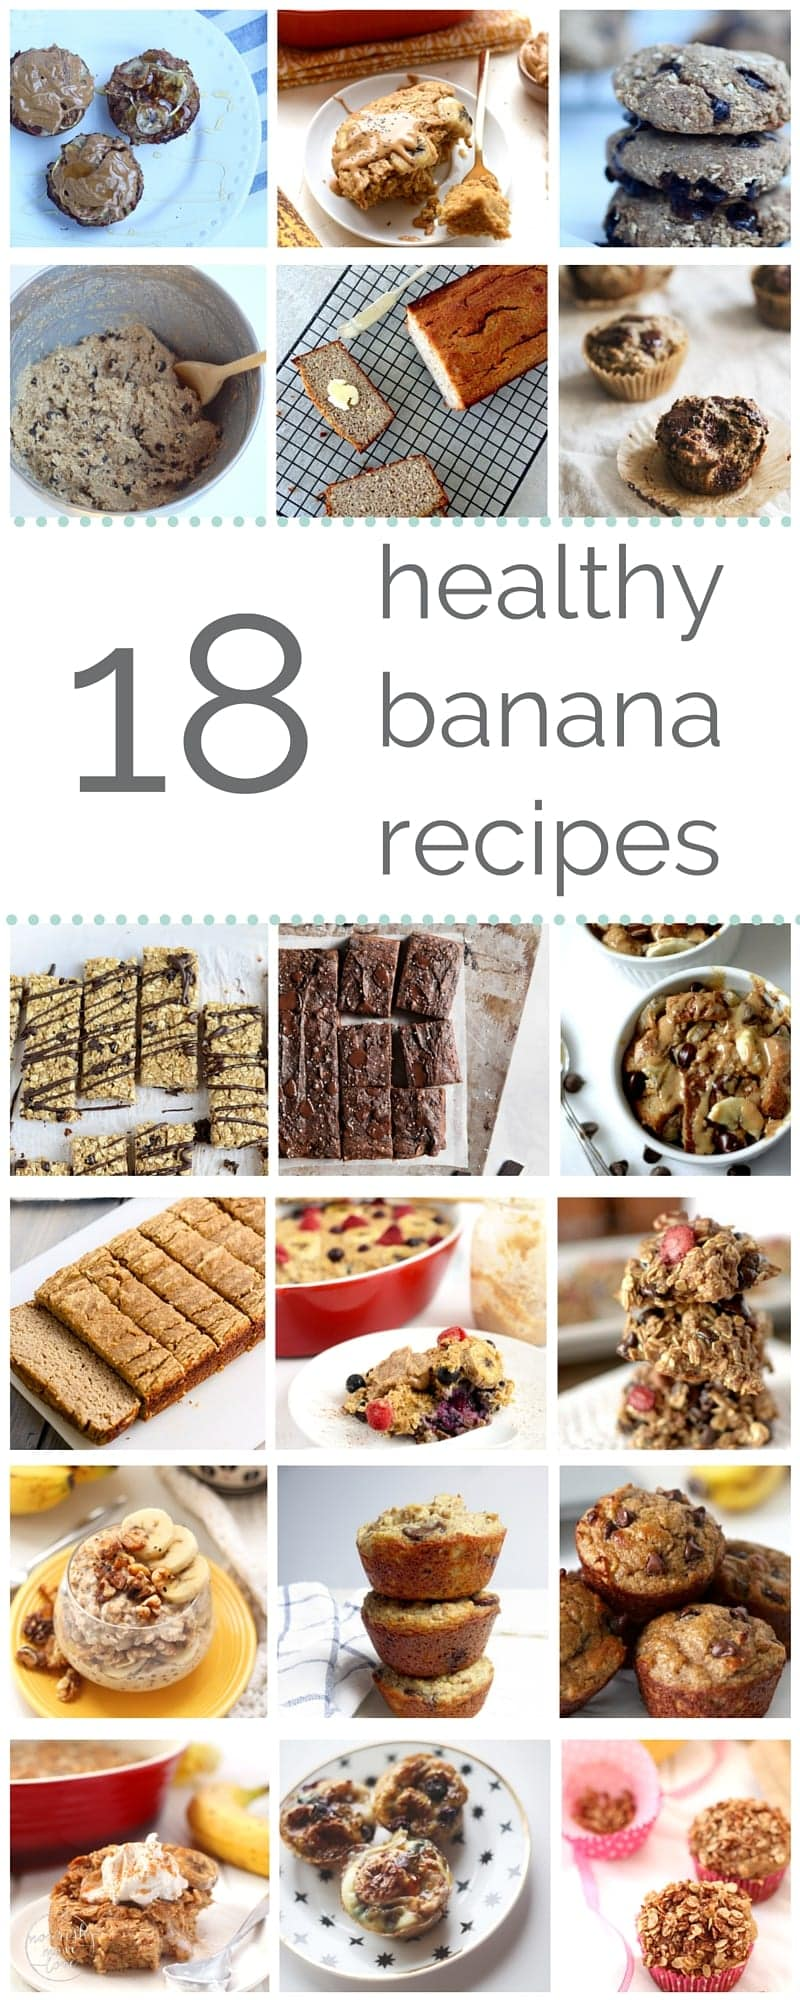 18 healthy banana recipes to satisfy your carb cravings | go bananas with these 18 deliciously healthy ways to use over-ripe bananas. from double chocolate banana bread to peanut butter banana oatmeal bake, these recipes are sure to satisfy all your carb cravings {guilt and gluten-free}! | www.nourishmovelove.com